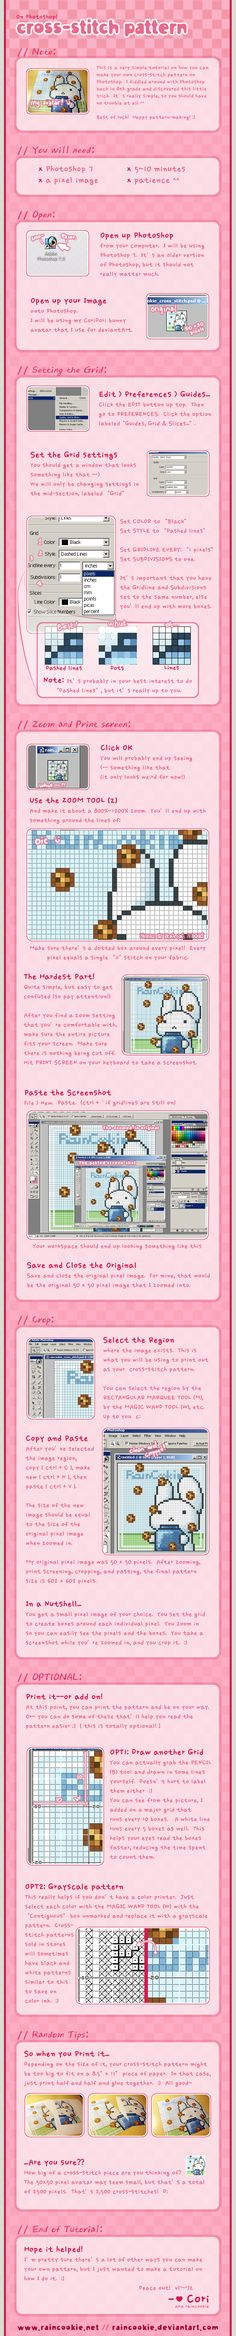 How to make your own cross-stitch pattern from any image!